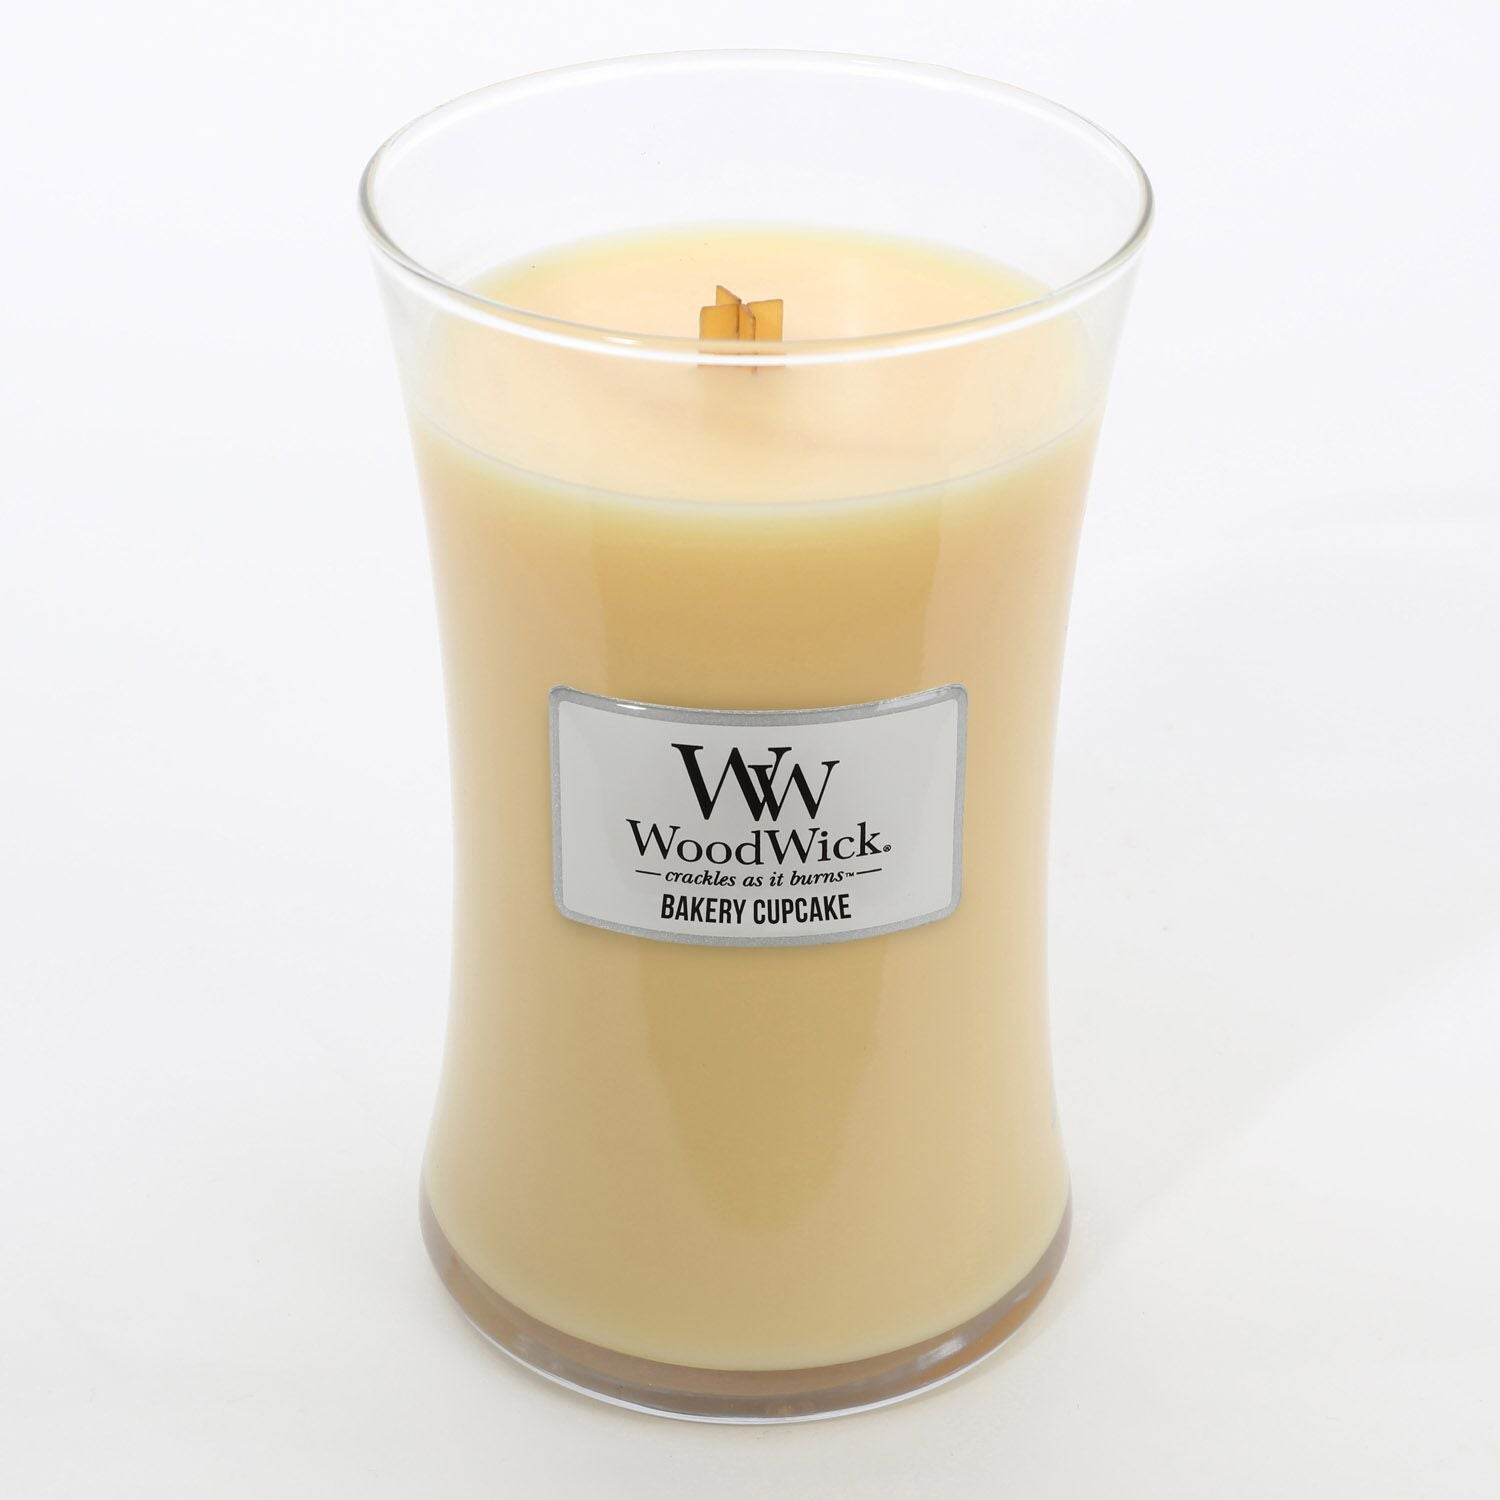 Large Bakery Cupcake Scented WoodWick Soy Candle